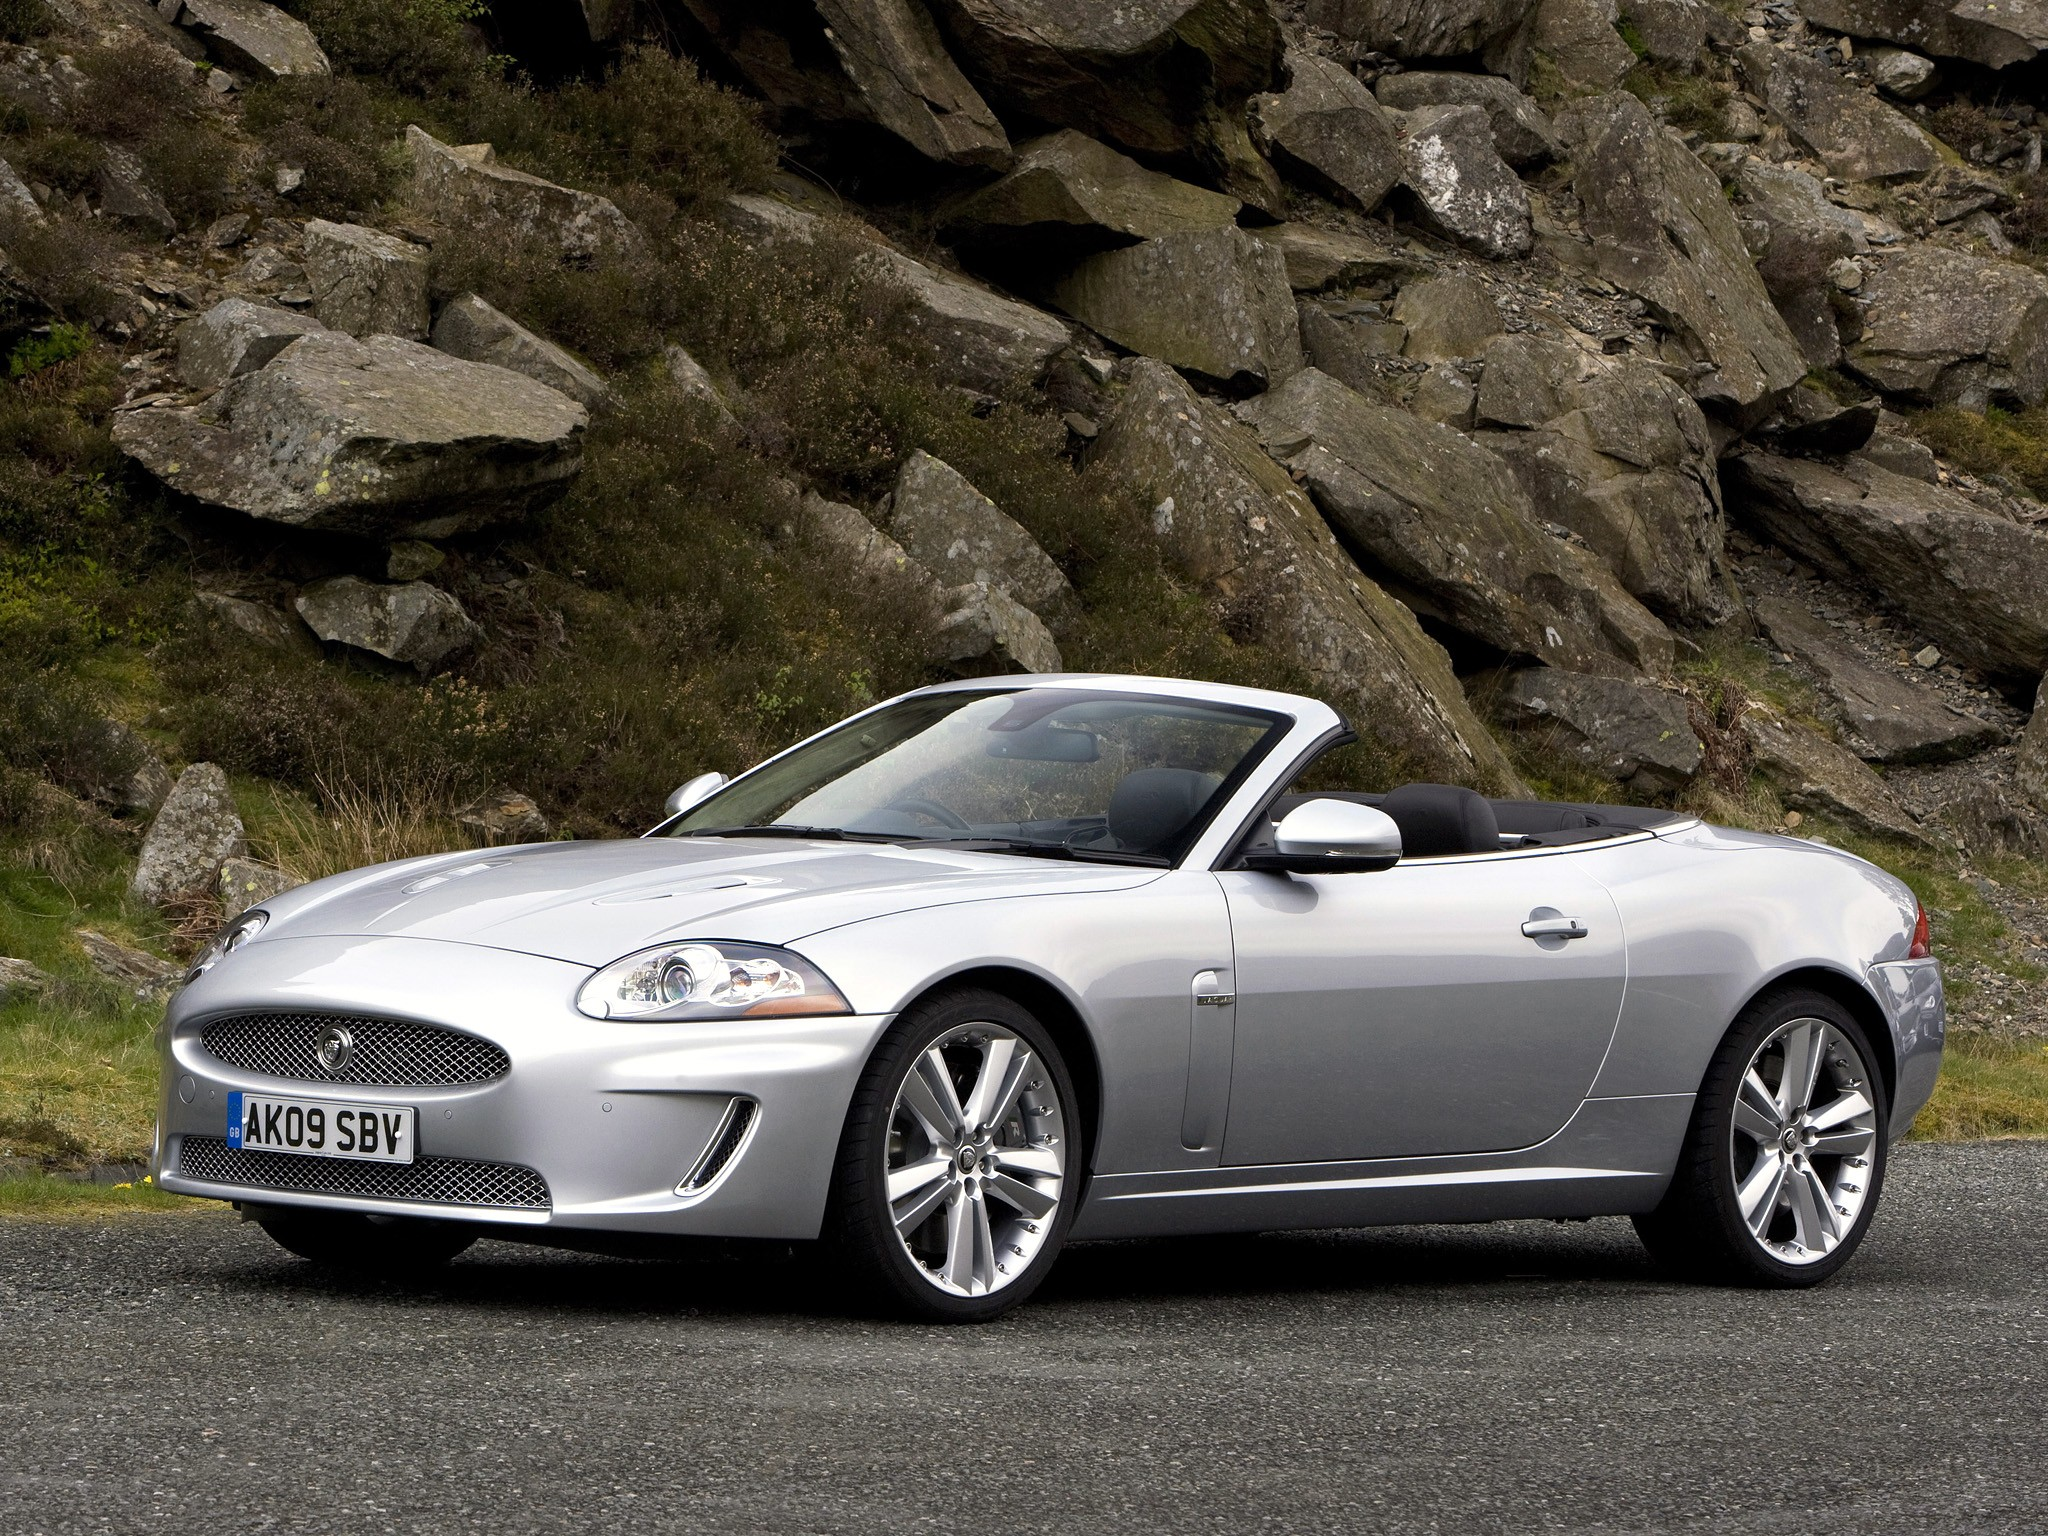 jaguar xkr convertible specs 2009 2010 2011 2012 2013 2014 autoevolution. Black Bedroom Furniture Sets. Home Design Ideas